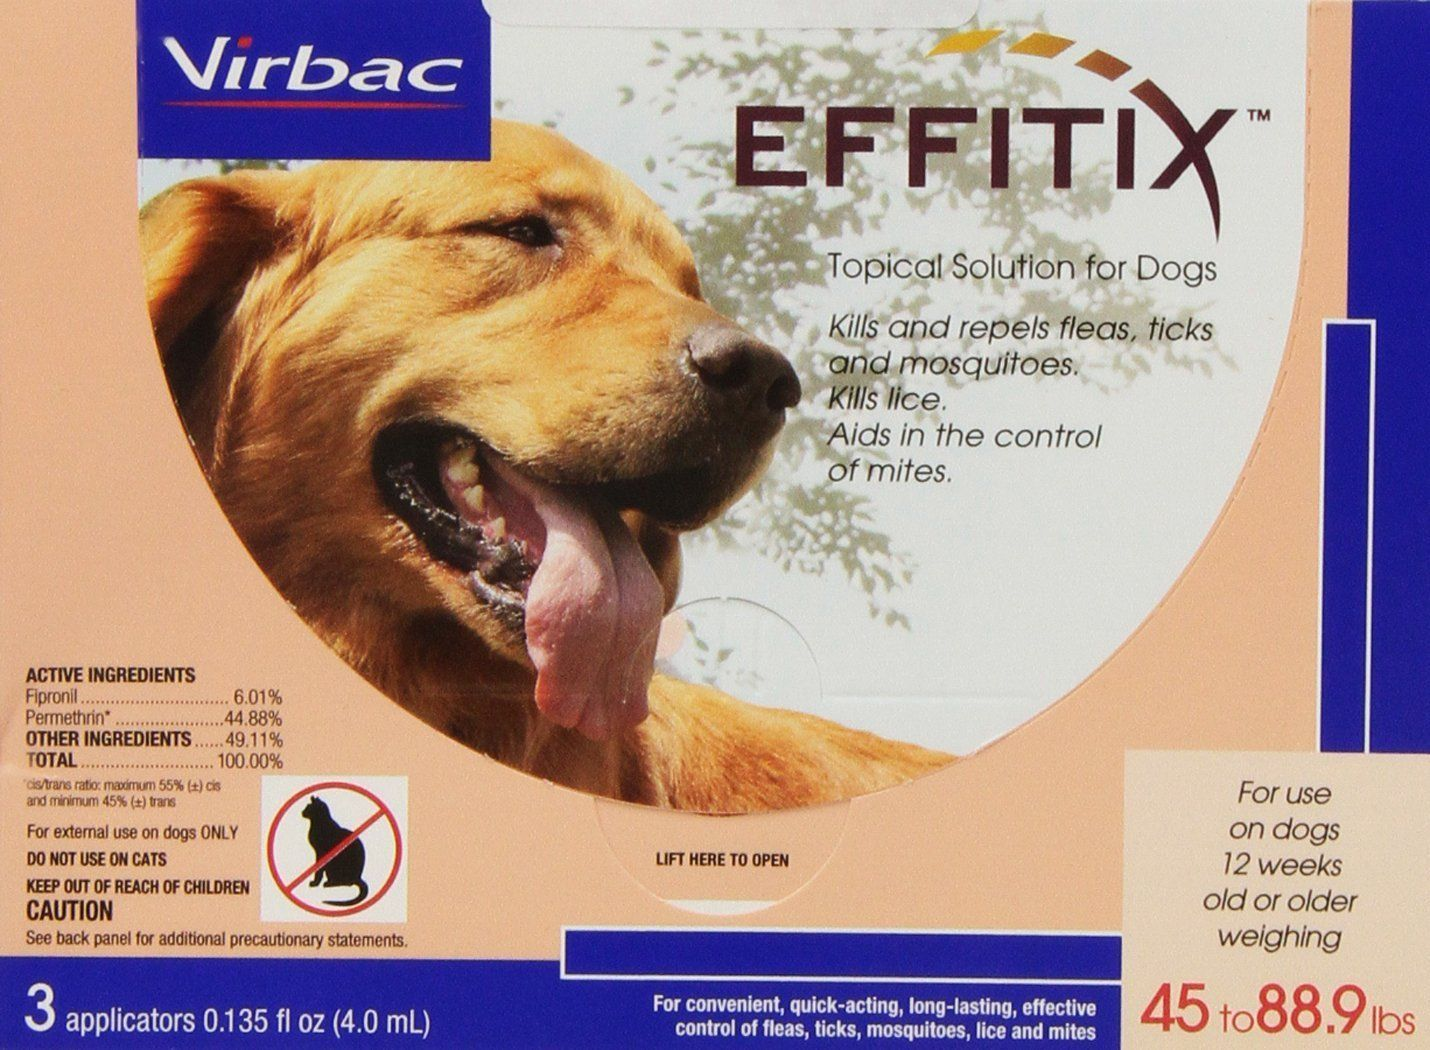 Virbac 18222 Effitix Topical Solution For Dogs 4588 9 Lbs 3 Month Supply Pink Dogs Fleas Large Dogs